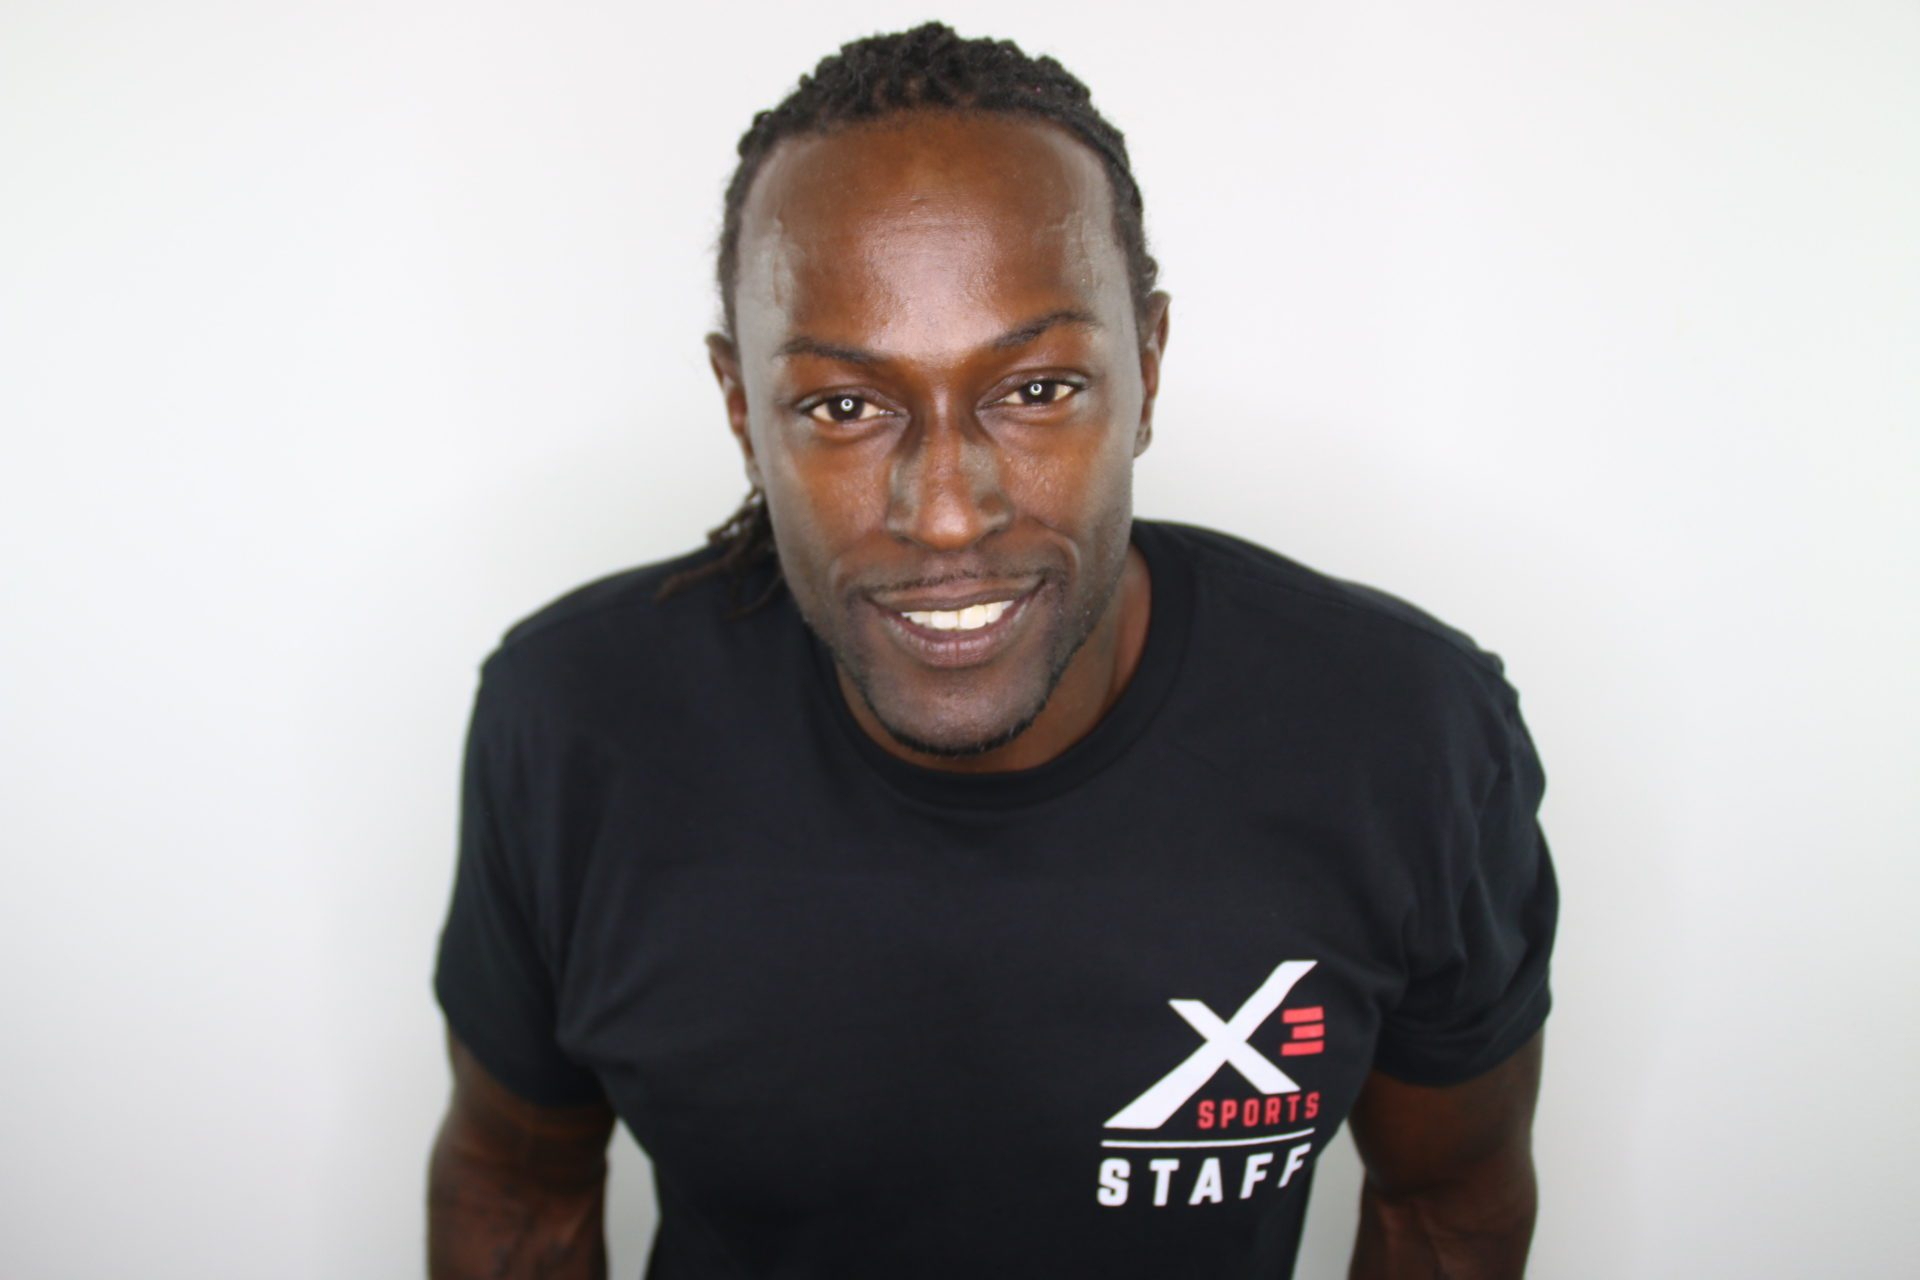 Omar Higgins | X3 Sports Employee | X3 Sports